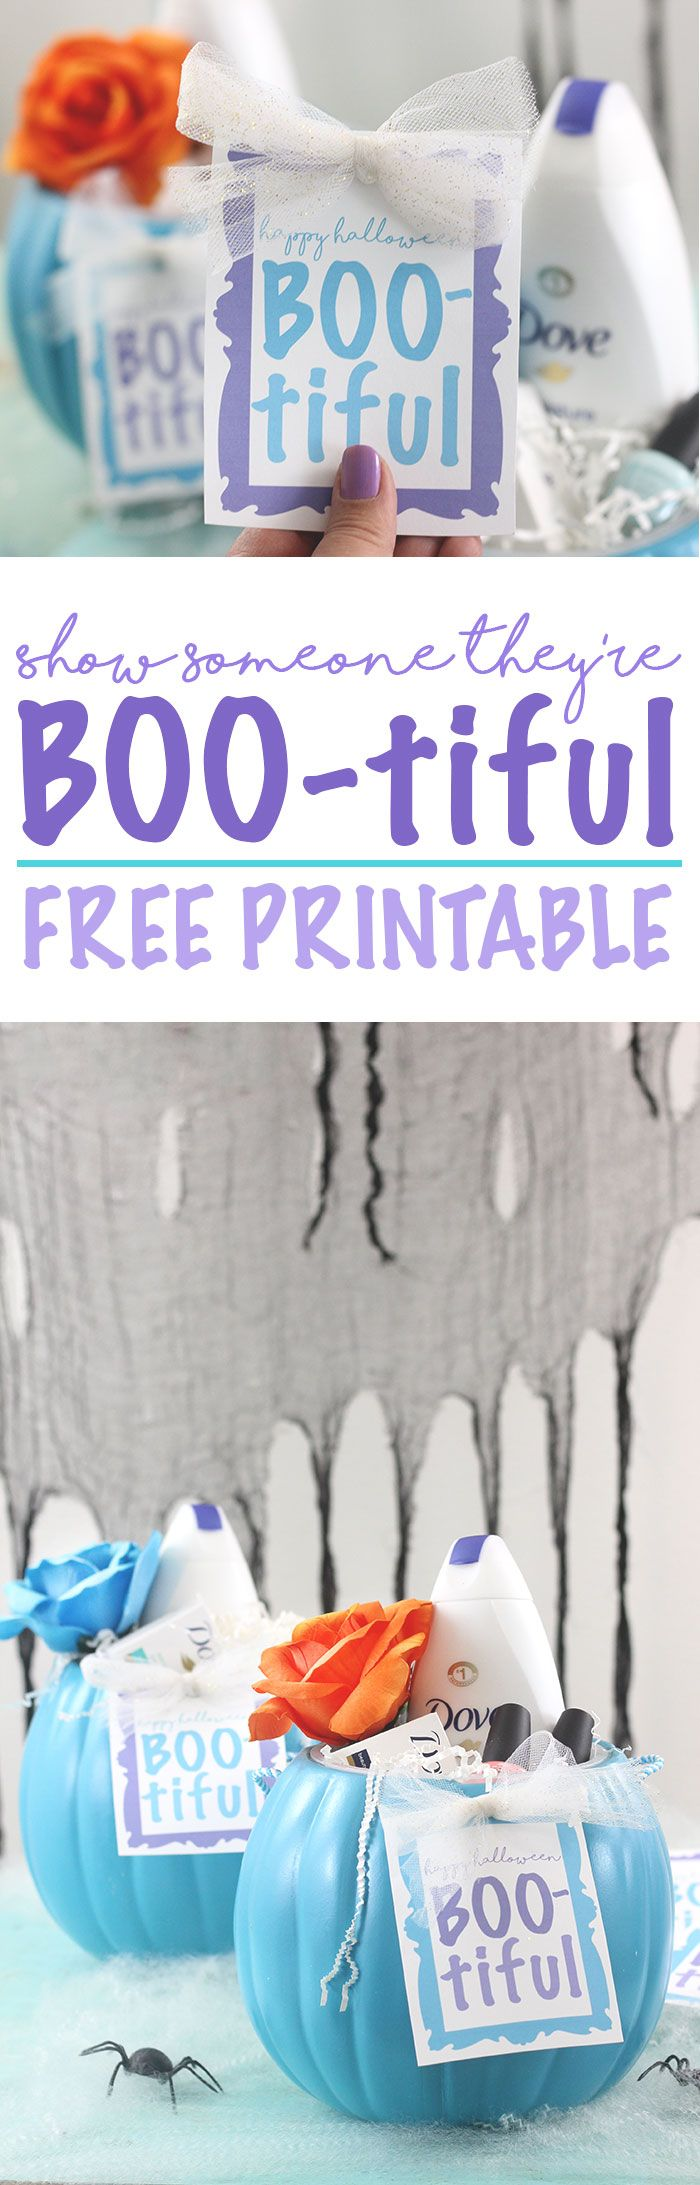 Halloween DIY Gift Idea. Show someone they're BOO-tiful with a self esteem boosting gift. Free printable gift tag for Halloween. AD #RealBeauty #PassionforDove